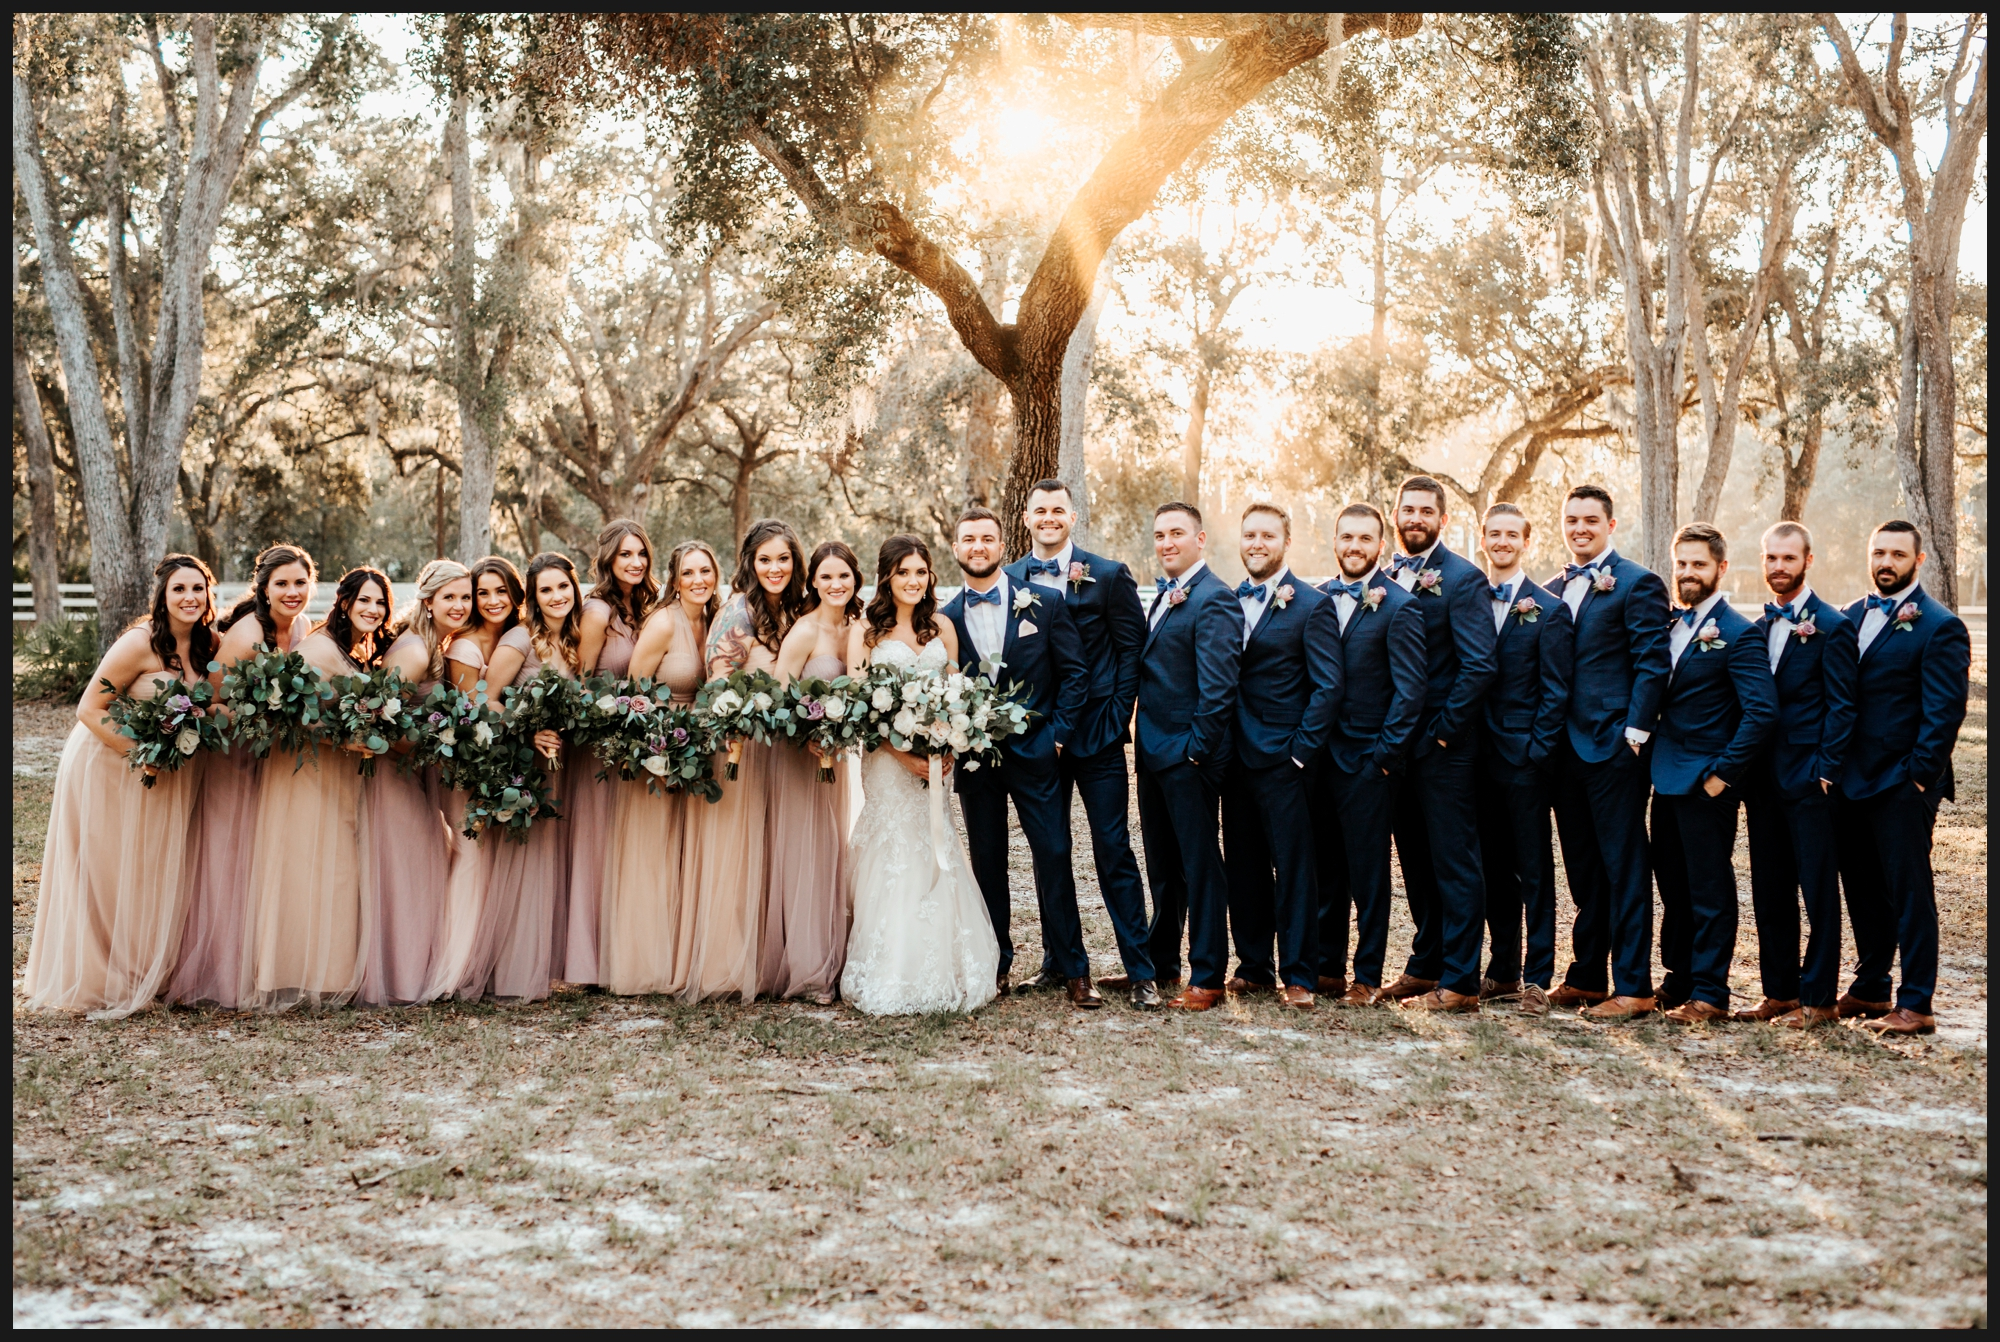 Orlando-Wedding-Photographer-destination-wedding-photographer-florida-wedding-photographer-bohemian-wedding-photographer_1093.jpg